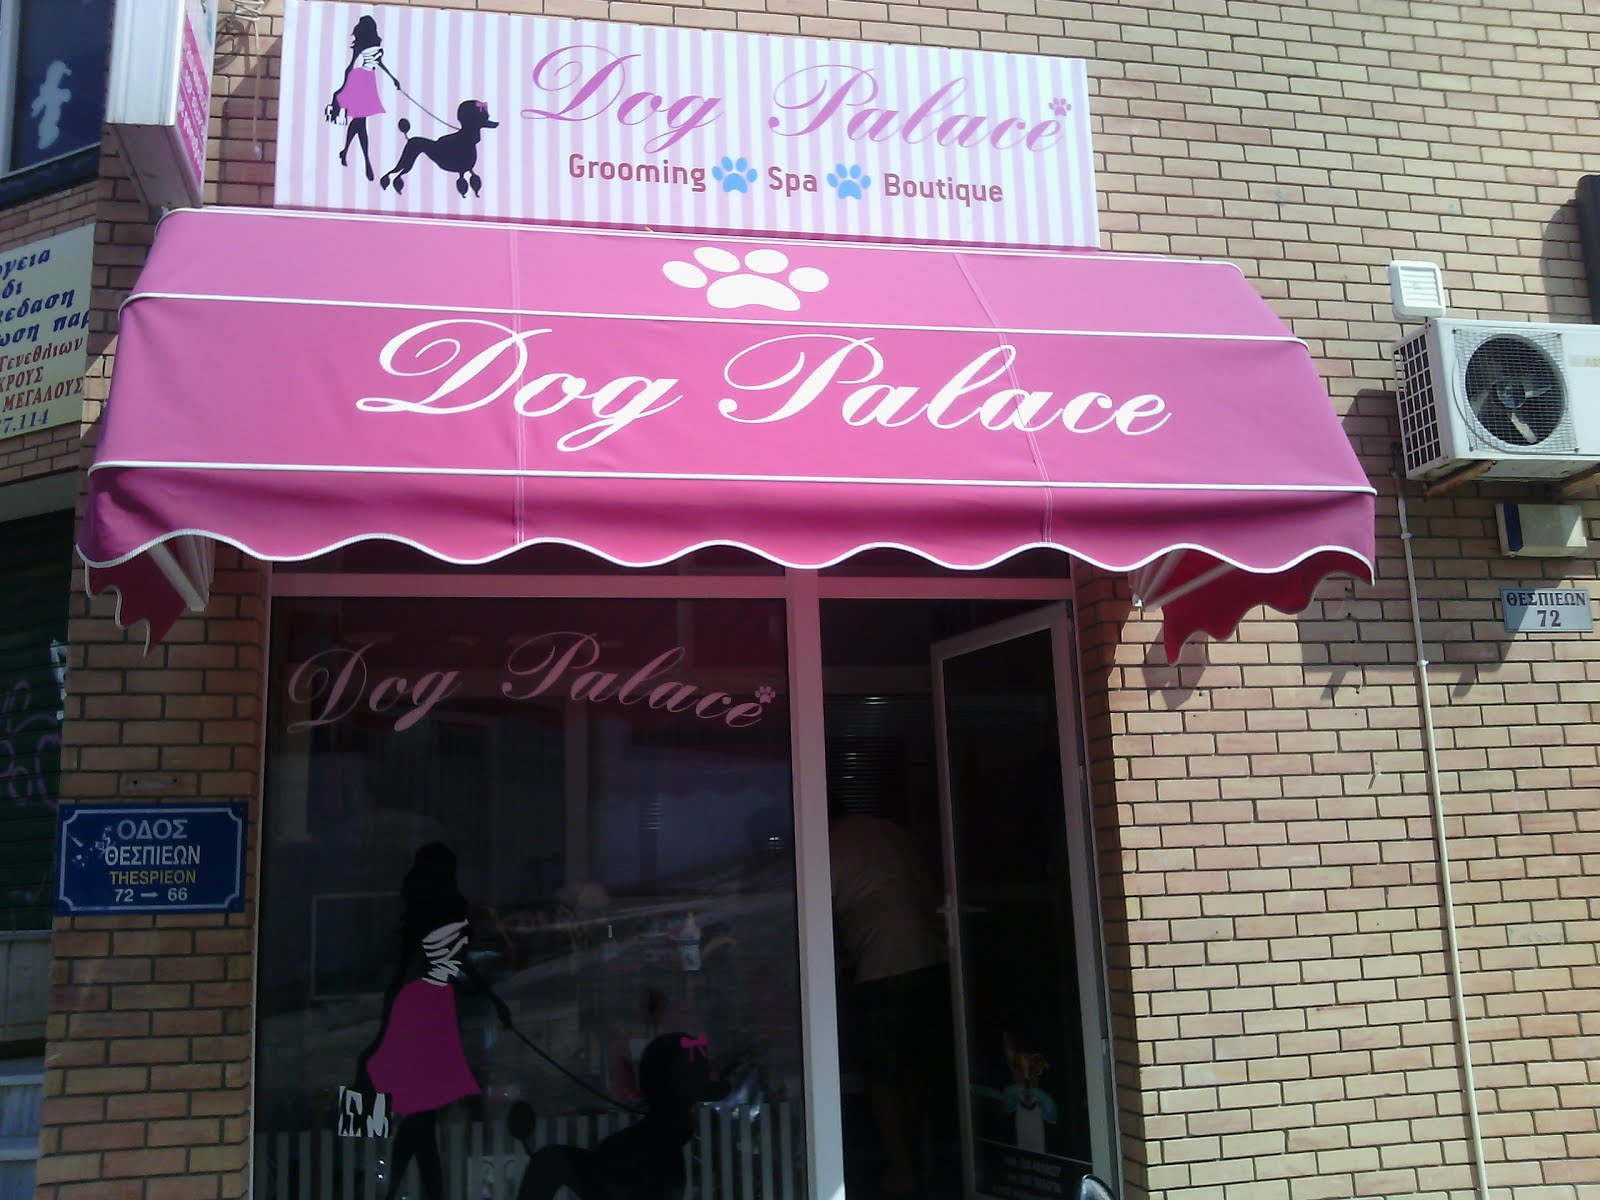 DOGPALACE   and GROOMING SCHOOL